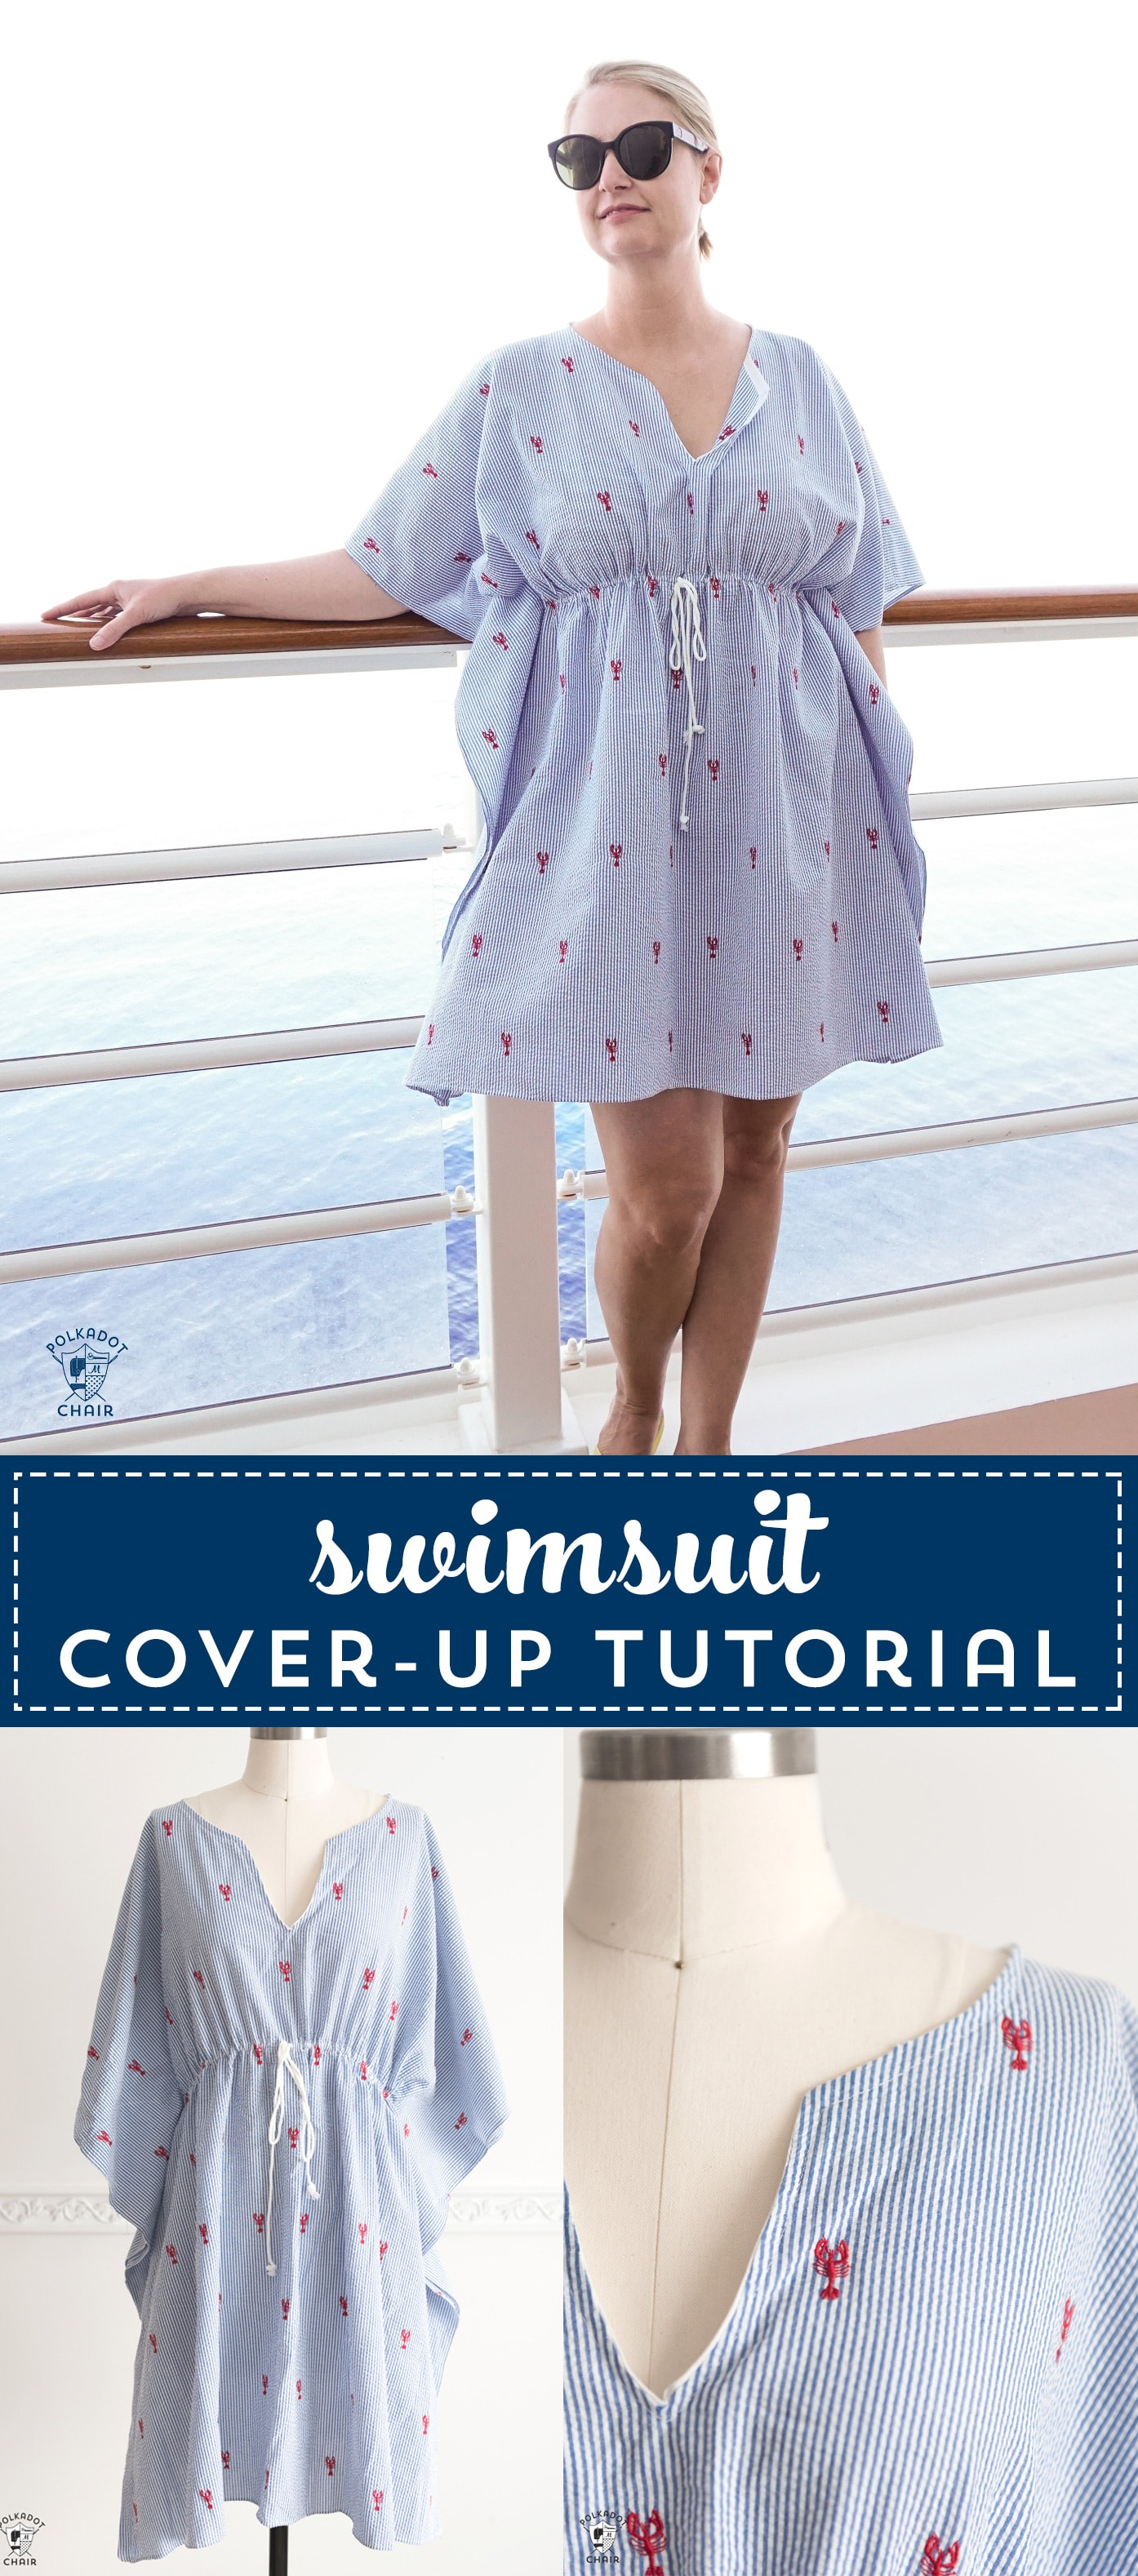 Learn how to make an easy and cute swimsuit cover-up. So simple to sew. A great cover-up for the beach, the pool or to take on a cruise. #freesewingpattern #sewingpatterns #swimsuitcoverups #bathingsuitcoverups #sewing